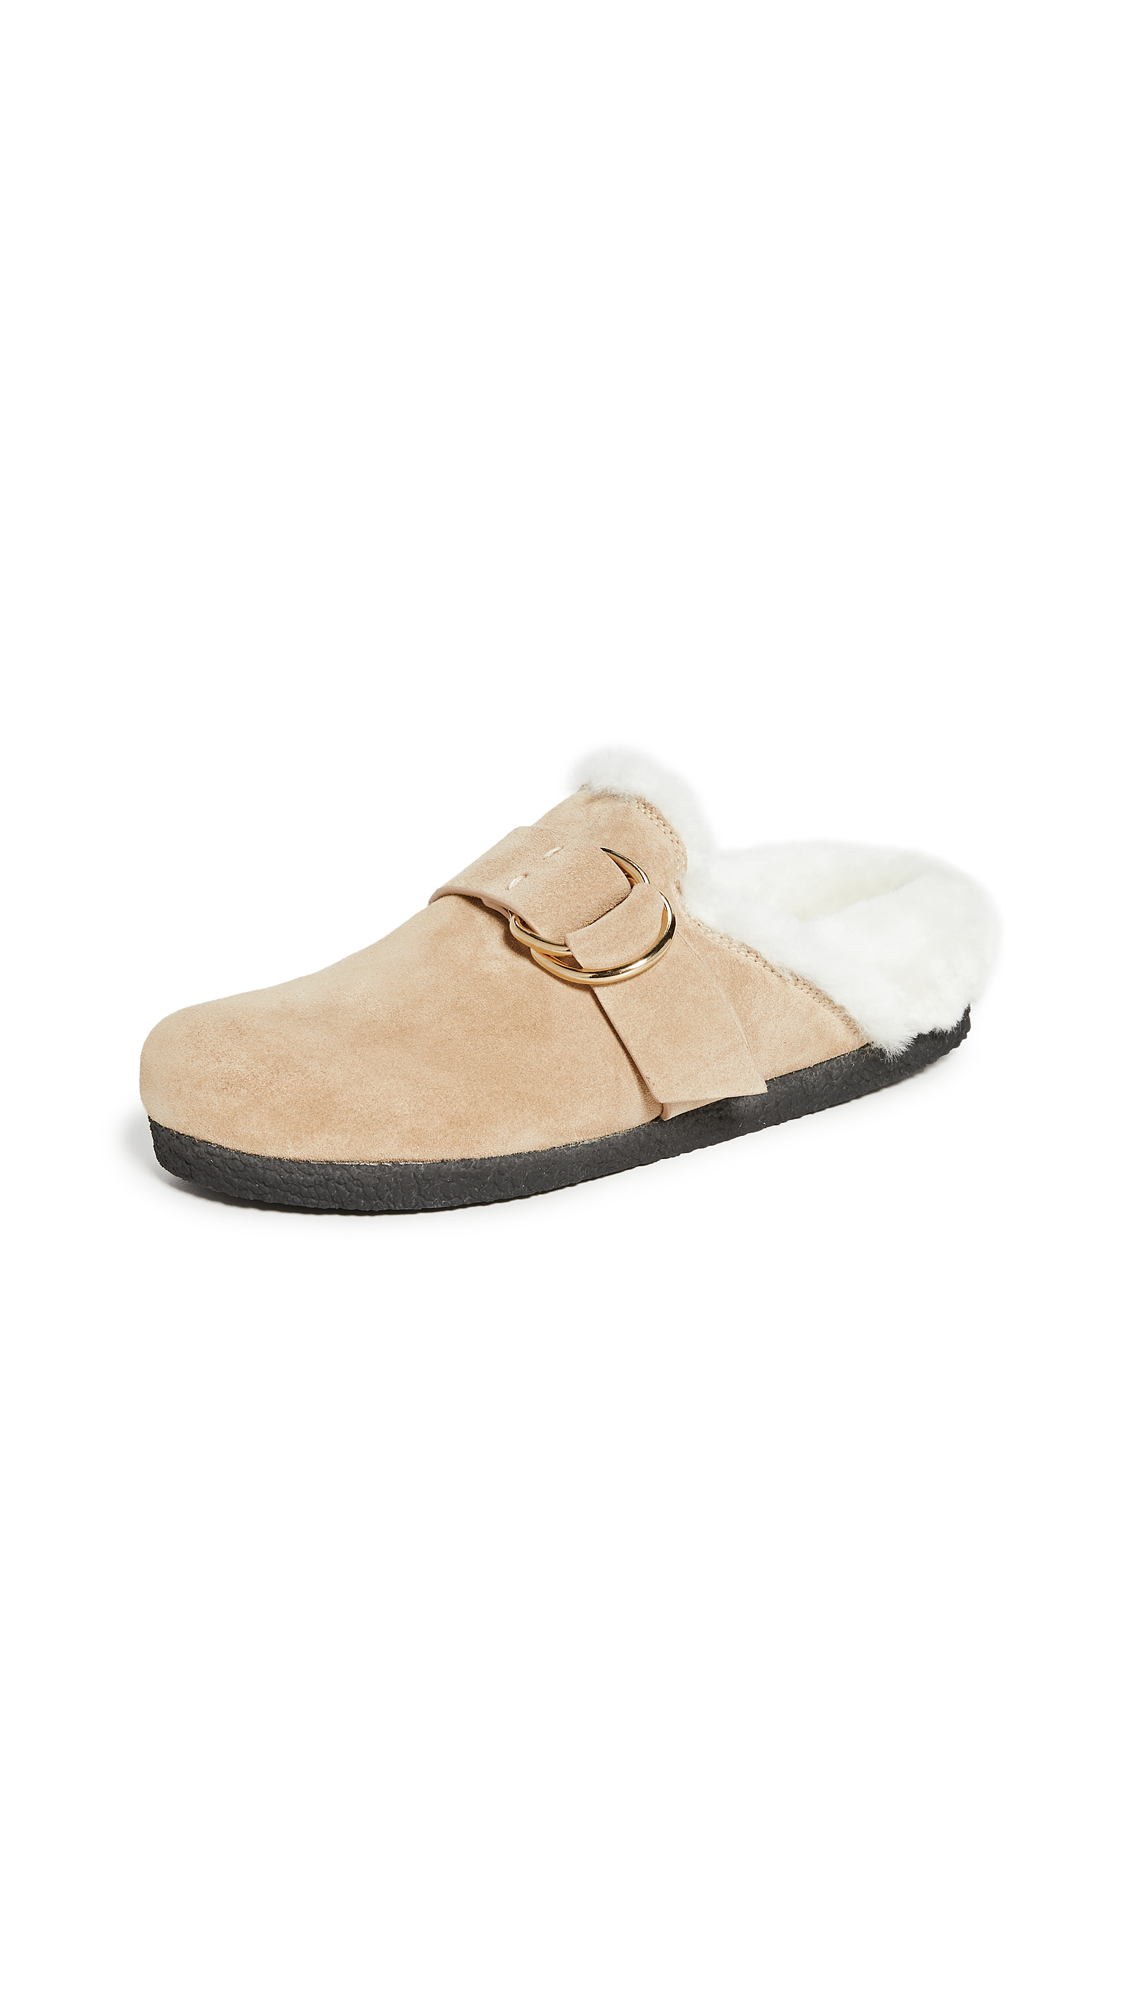 Joseph New Mugello Shearling Mules In Biscotto